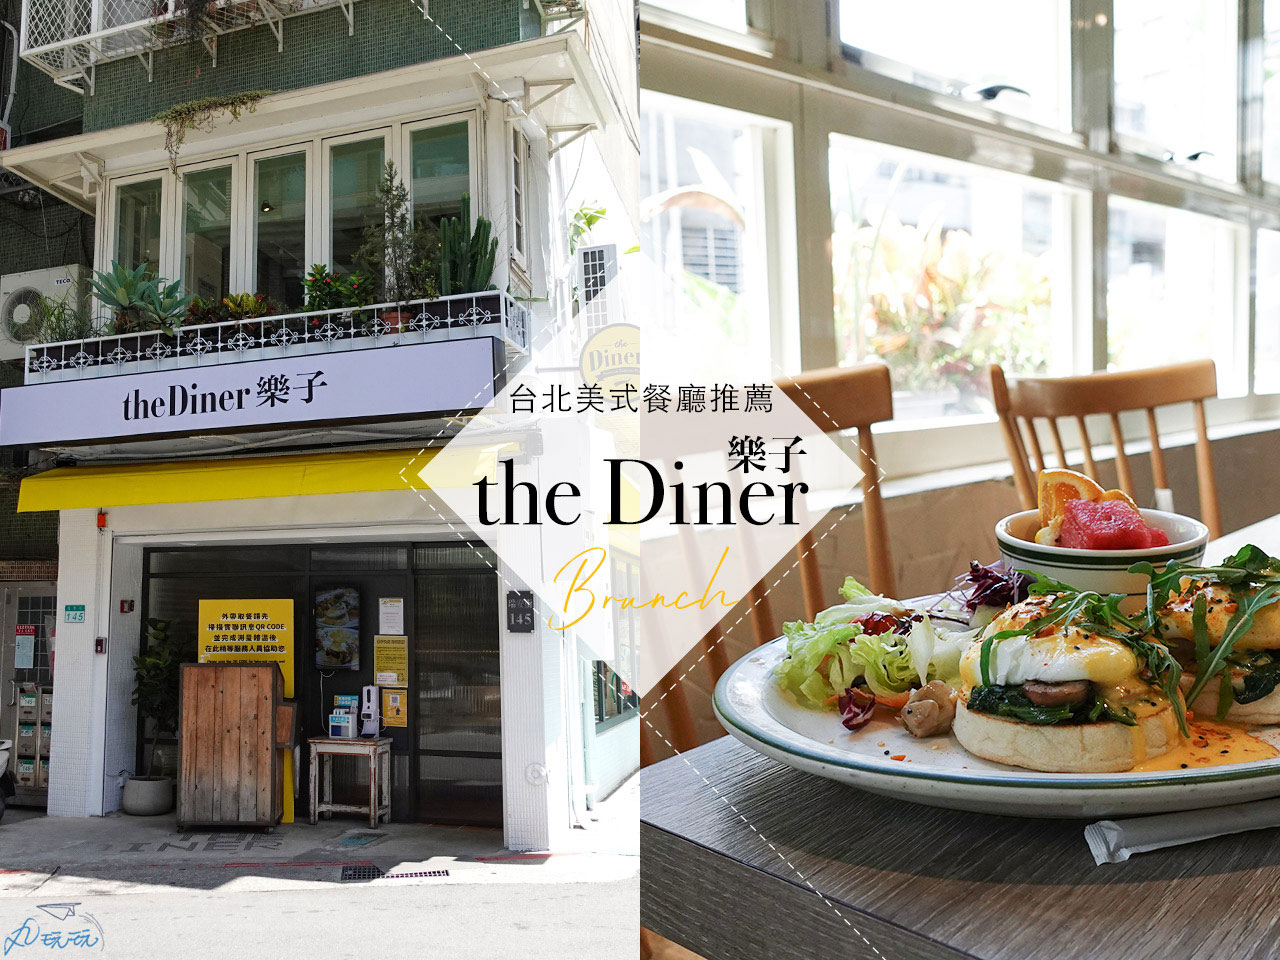 Read more about the article 台北美食|樂子the Diner瑞安店 美式早午餐霸主,班尼迪克蛋我的愛